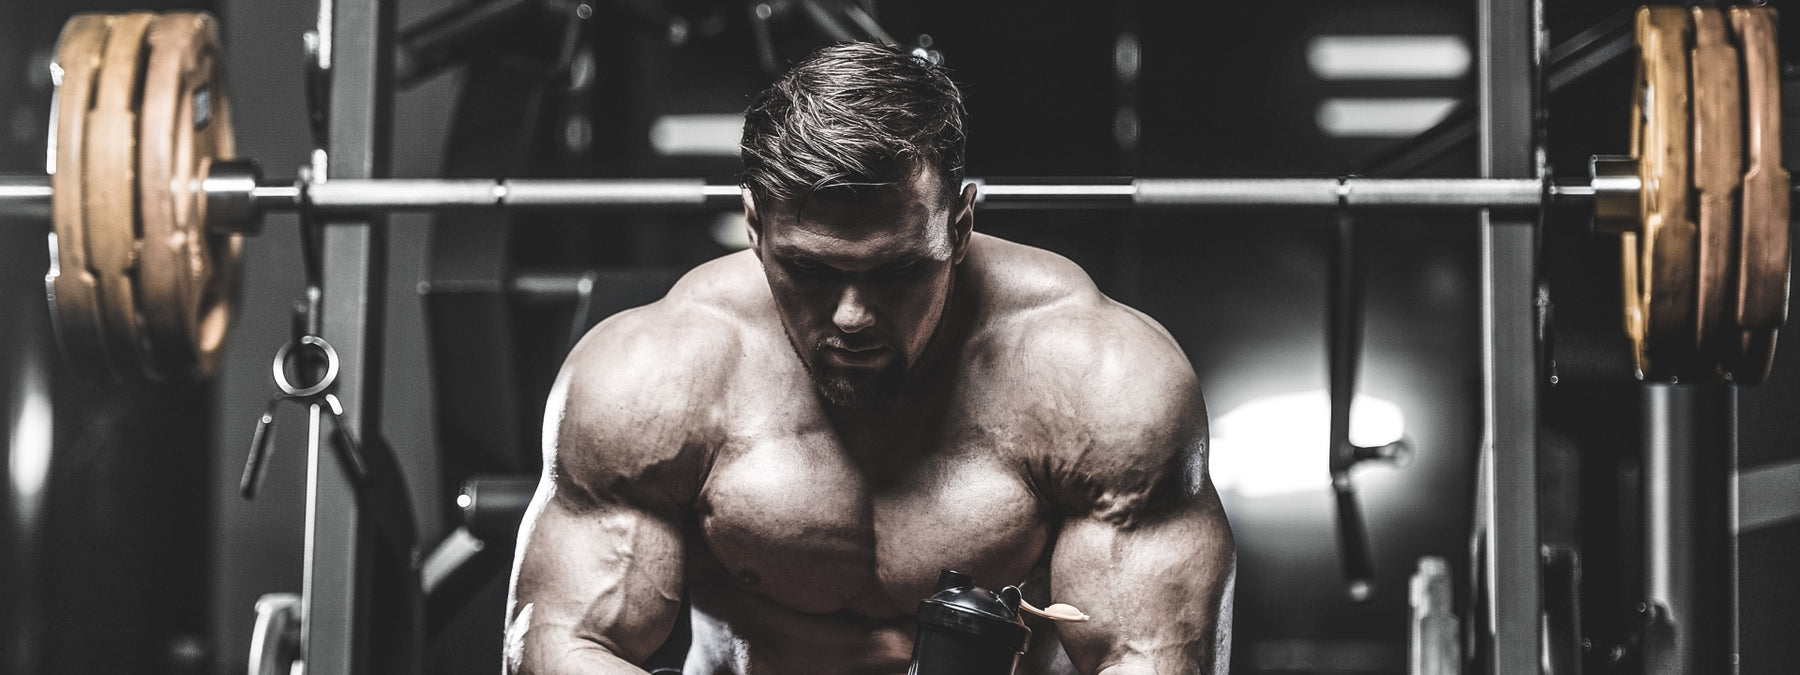 Powerlifting for Bodybuilders: From Chasing Pumps to Chasing Plates